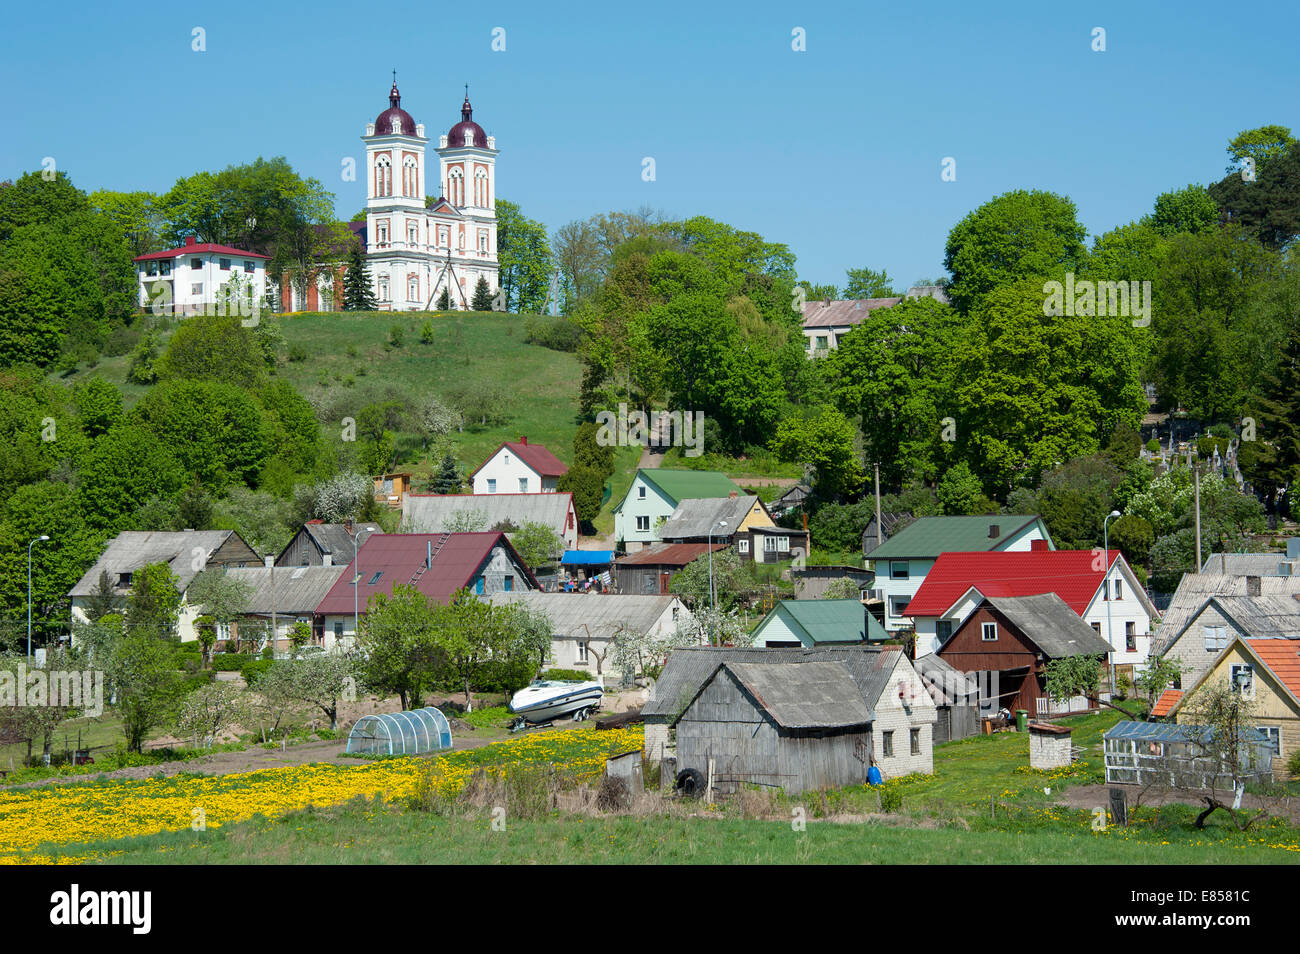 Church of St John the Baptist with the town of Seredzius, Lithuania, Baltic States - Stock Image